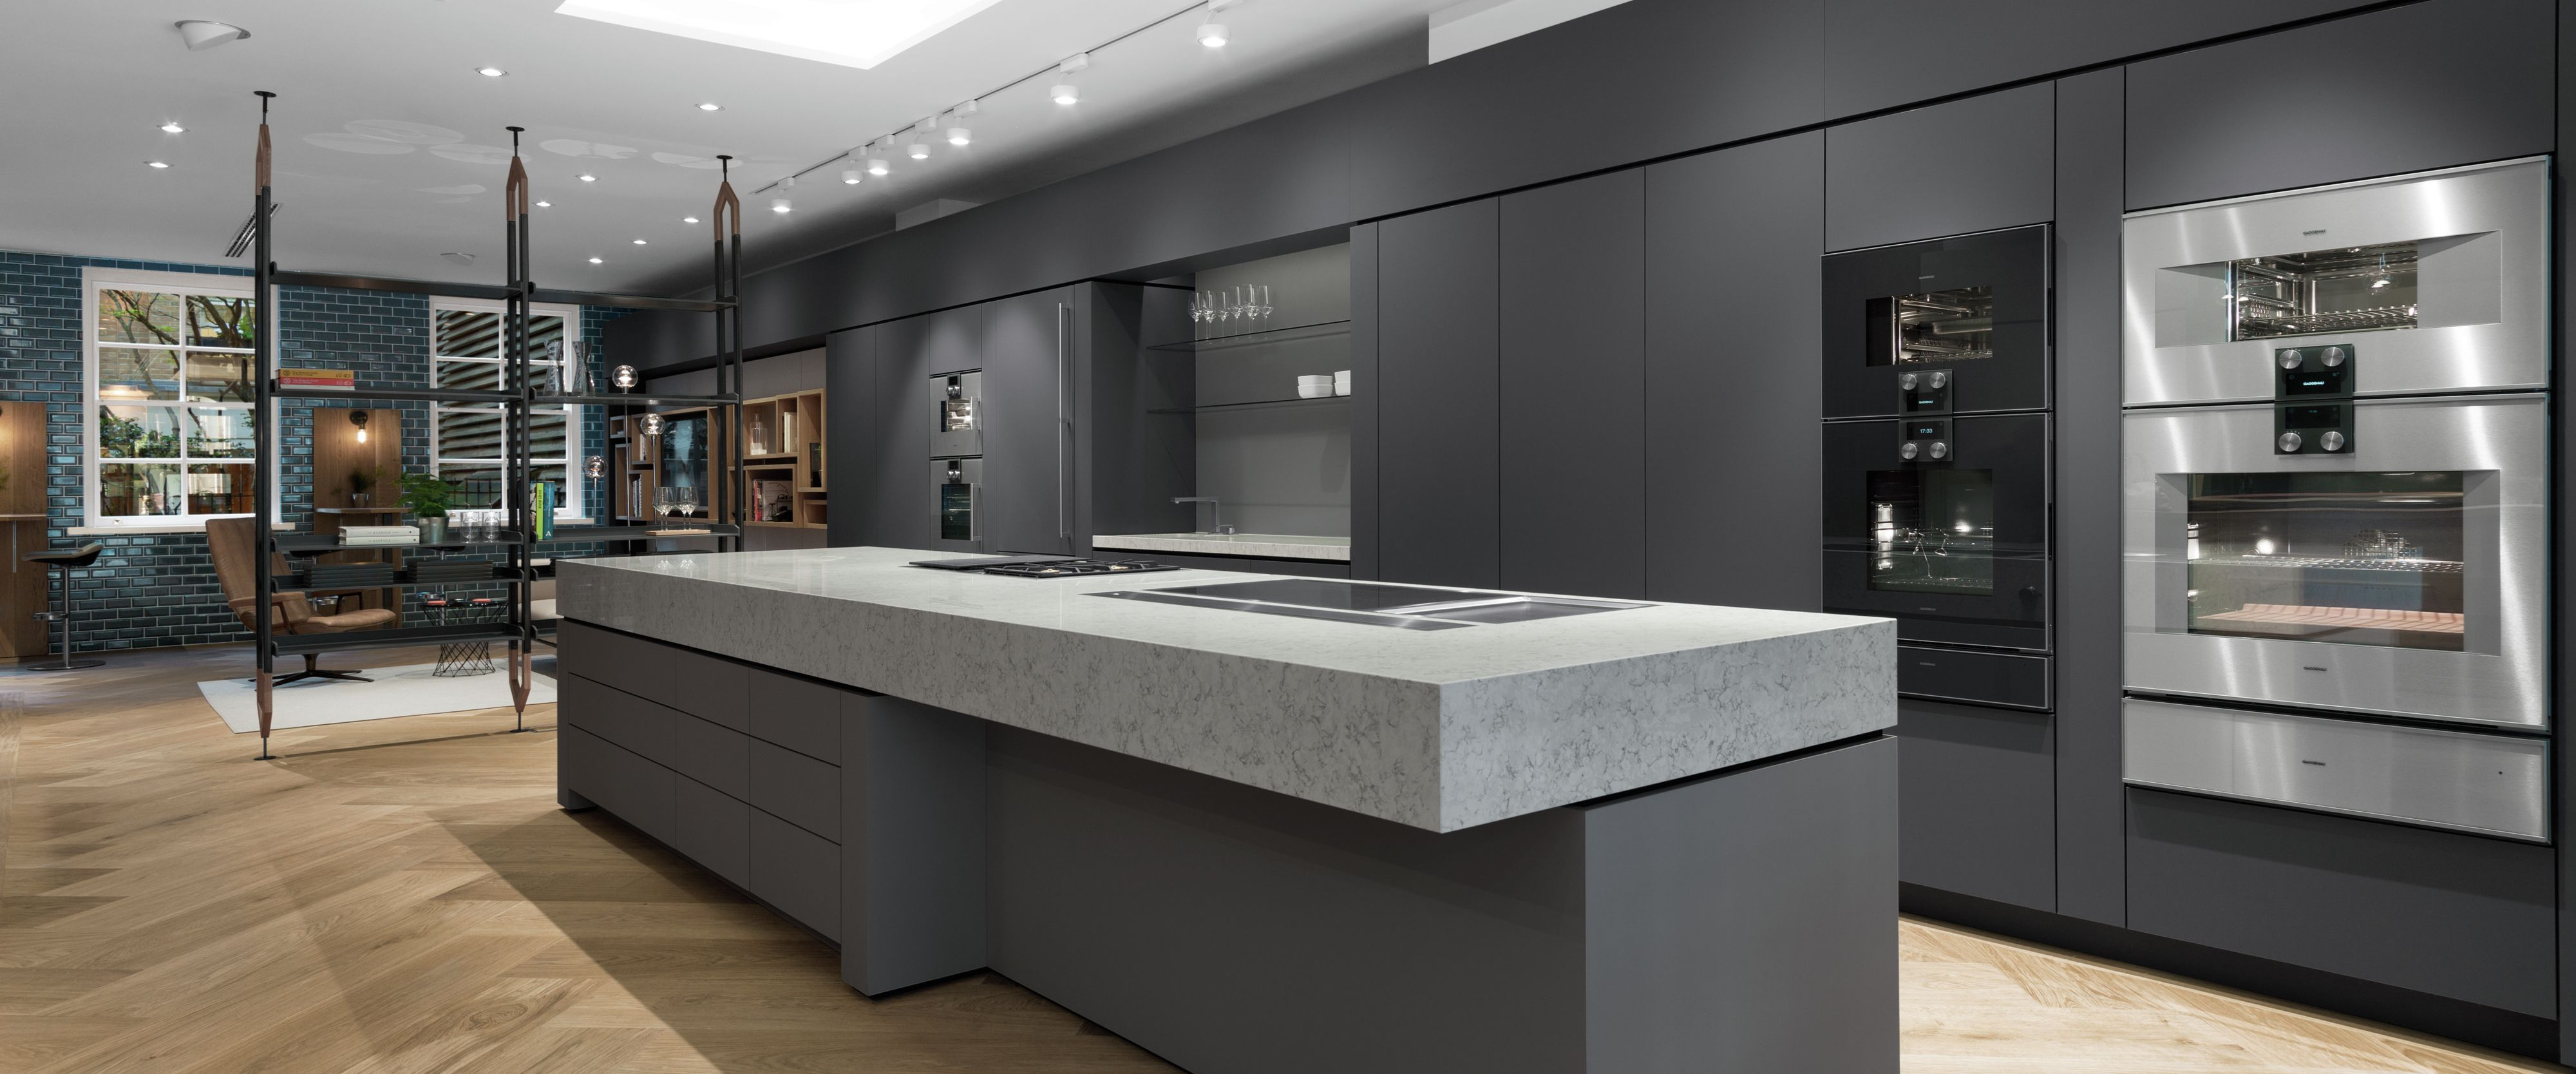 MCIM02599727_6_gaggenau_showroom_london_stage_3